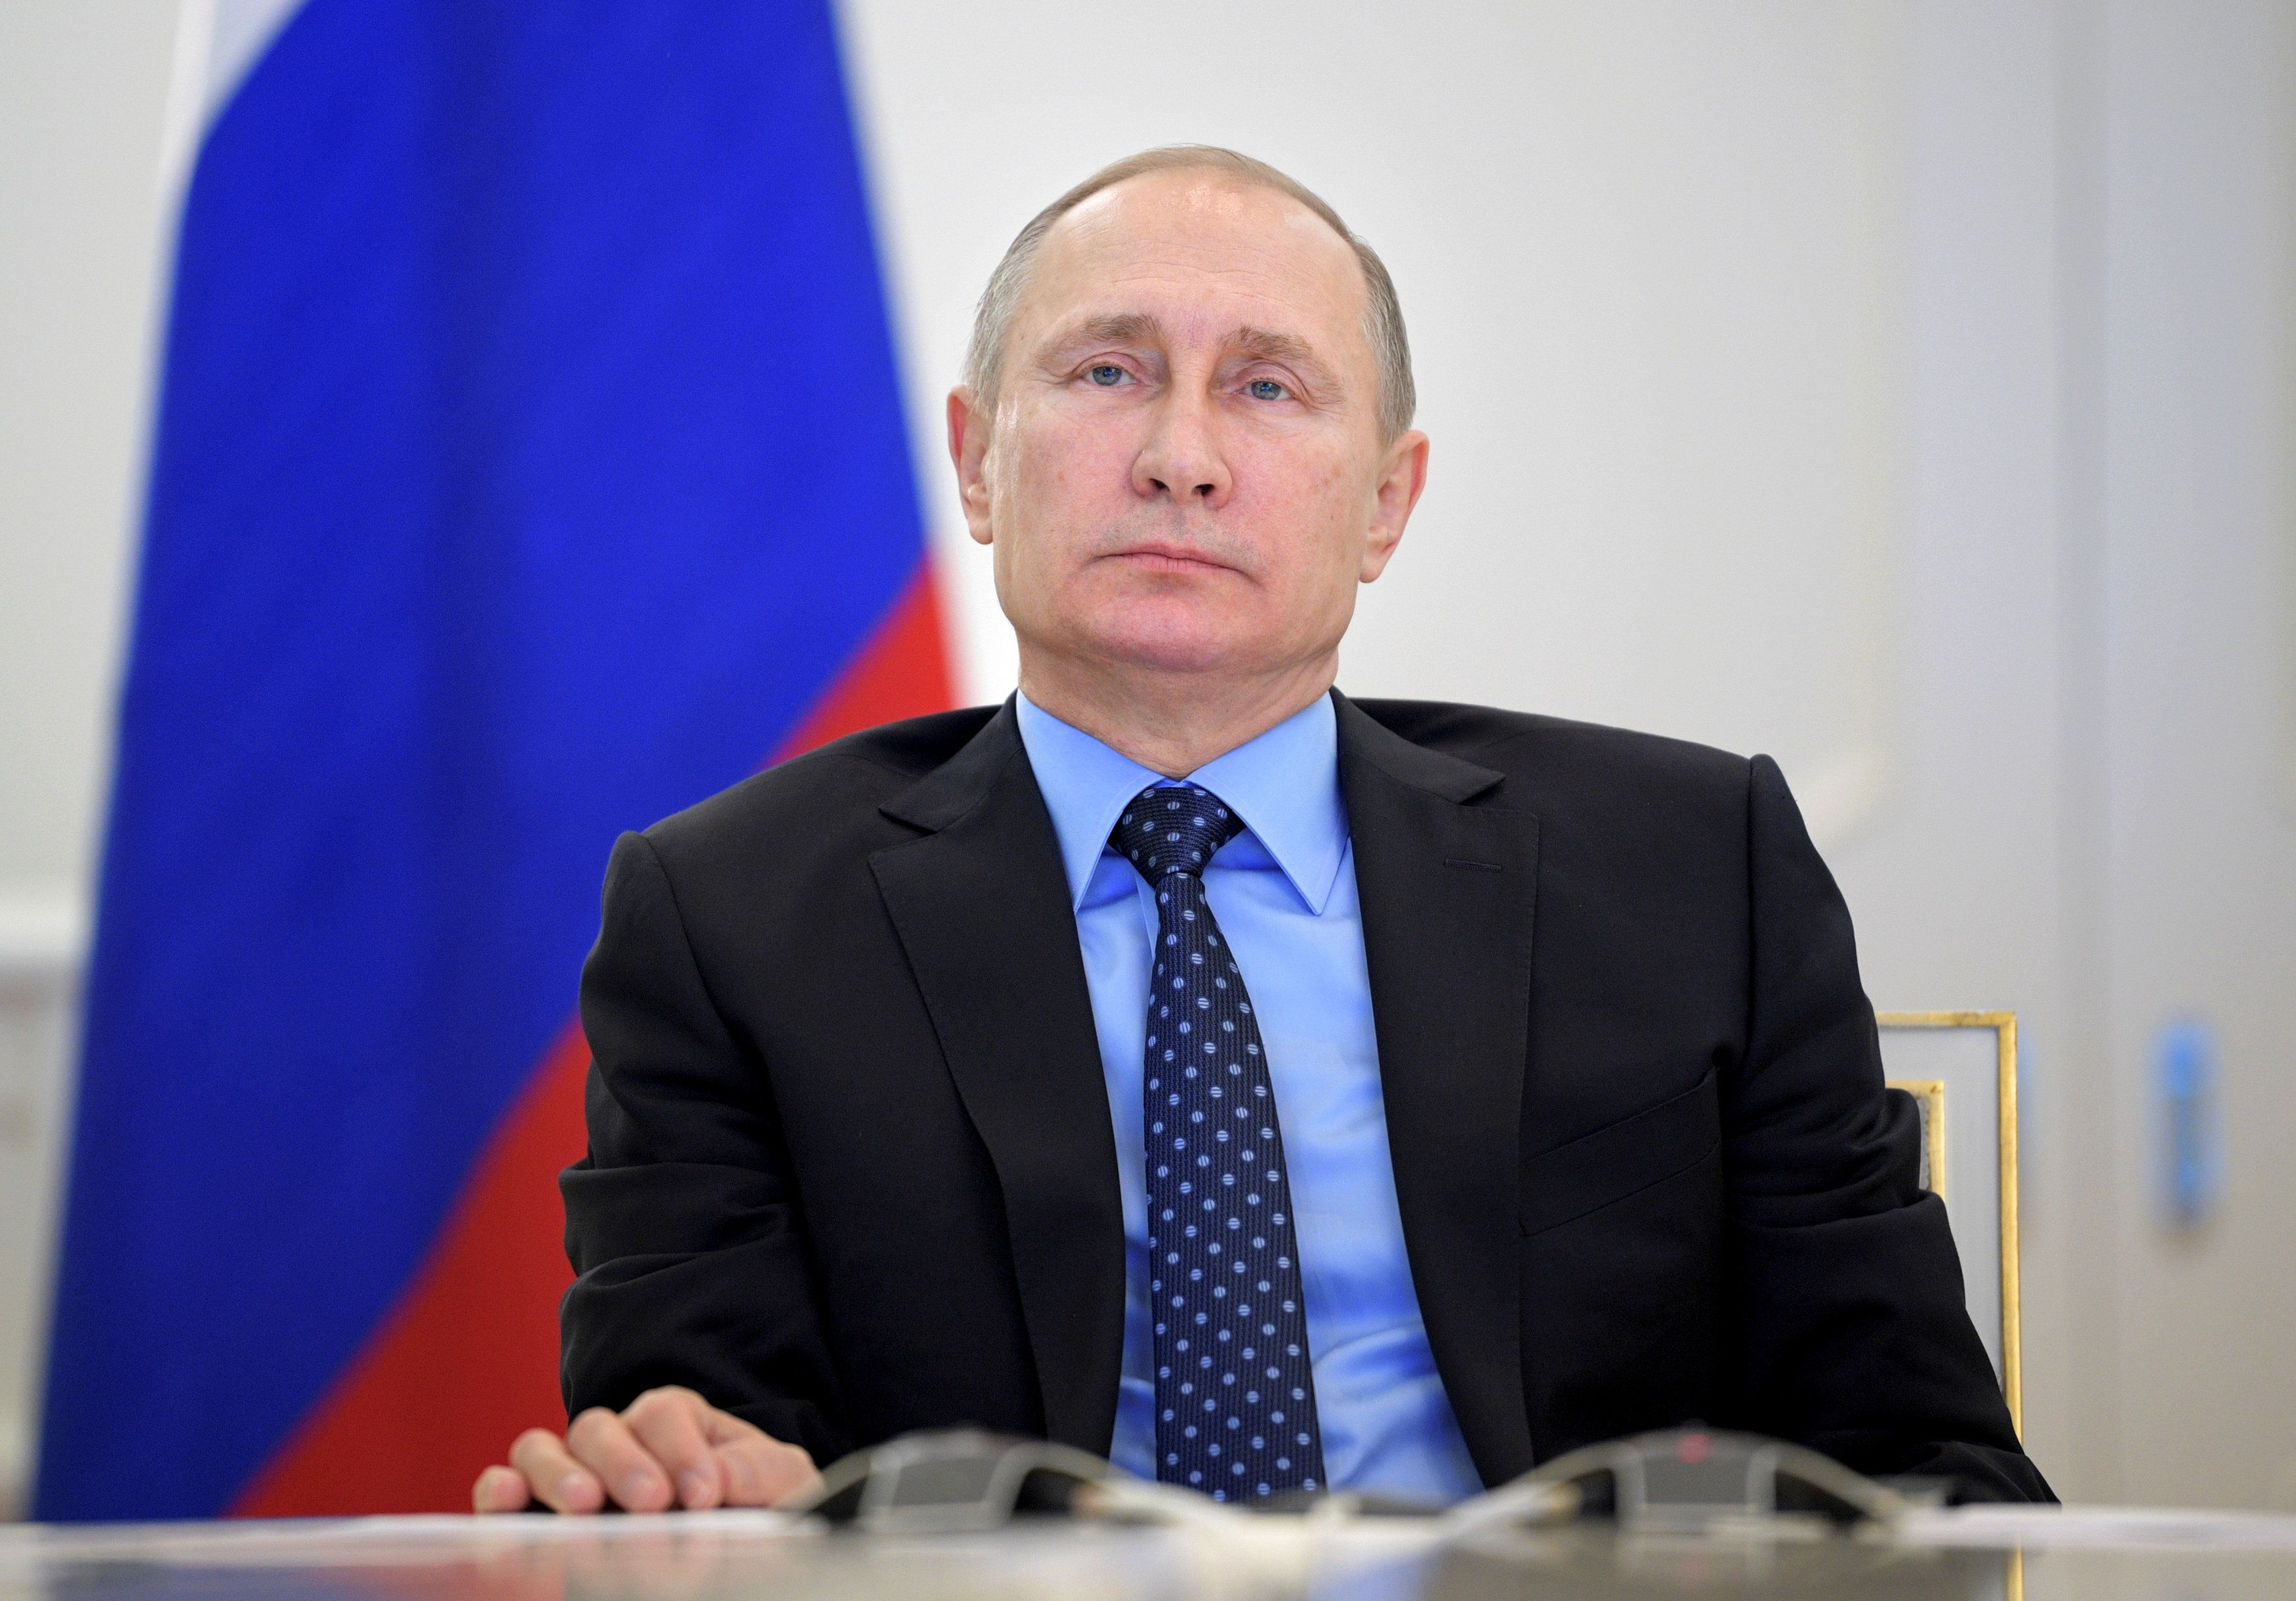 Russian President Vladimir Putin takes part in a video link, dedicated to the start of natural gas supplying from mainland Russia to Crimea, in Moscow, Russia, December 27, 2016. Sputnik/Alexei Druzhinin/Kremlin via REUTERS ATTENTION EDITORS - THIS IMAGE WAS PROVIDED BY A THIRD PARTY. EDITORIAL USE ONLY.